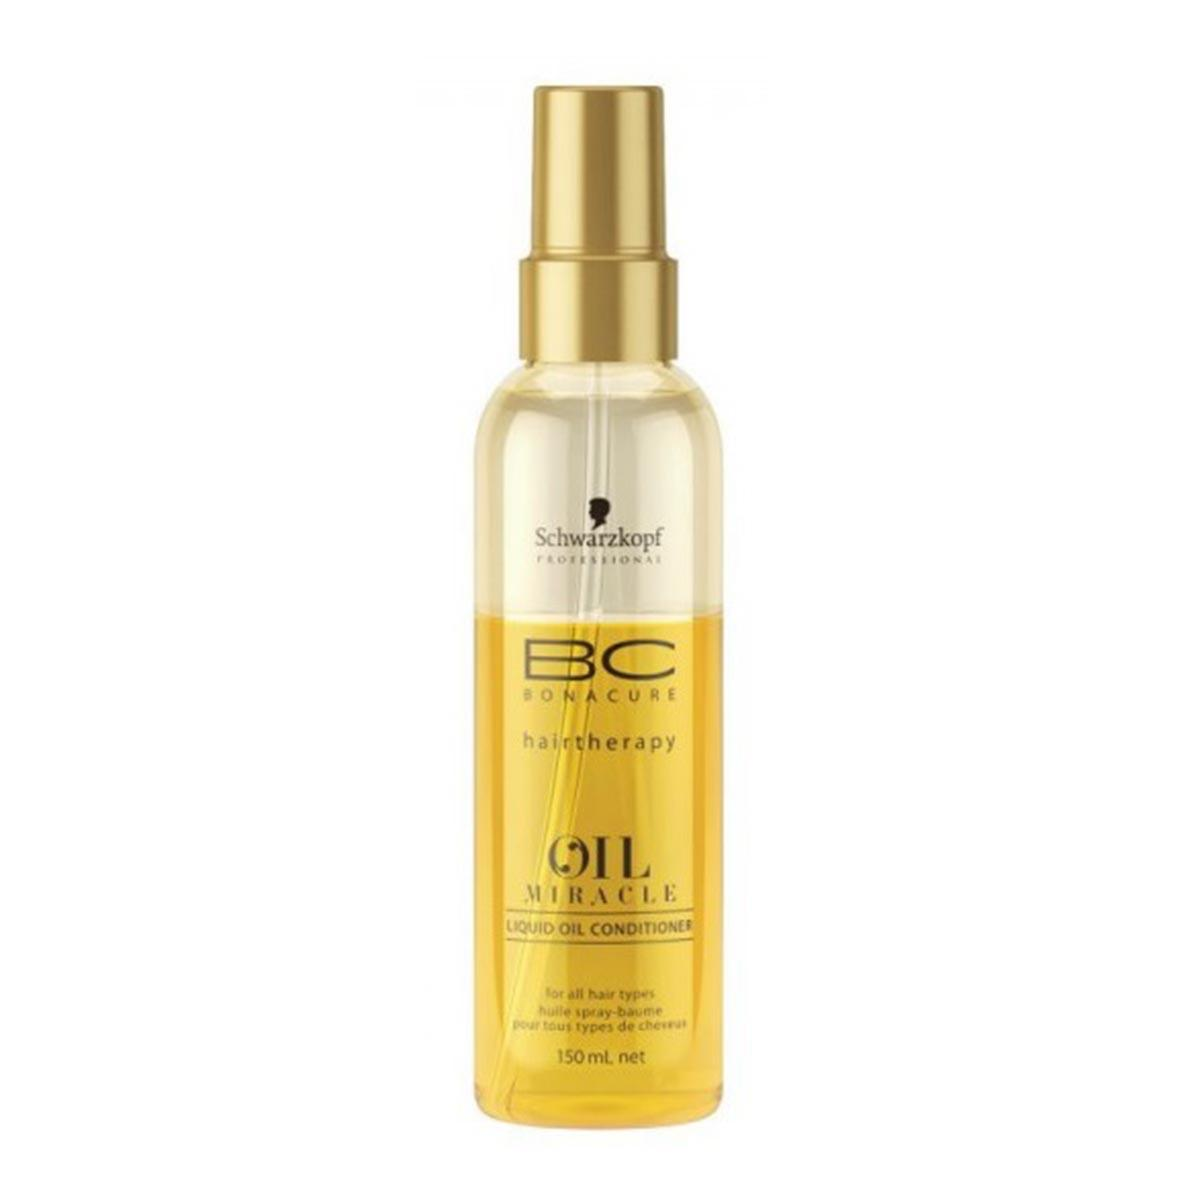 Schwarzkopf fragrances Bonacure Hairtherapy Oil Miracle Liquid Oil Conditioner 150ml Vapo